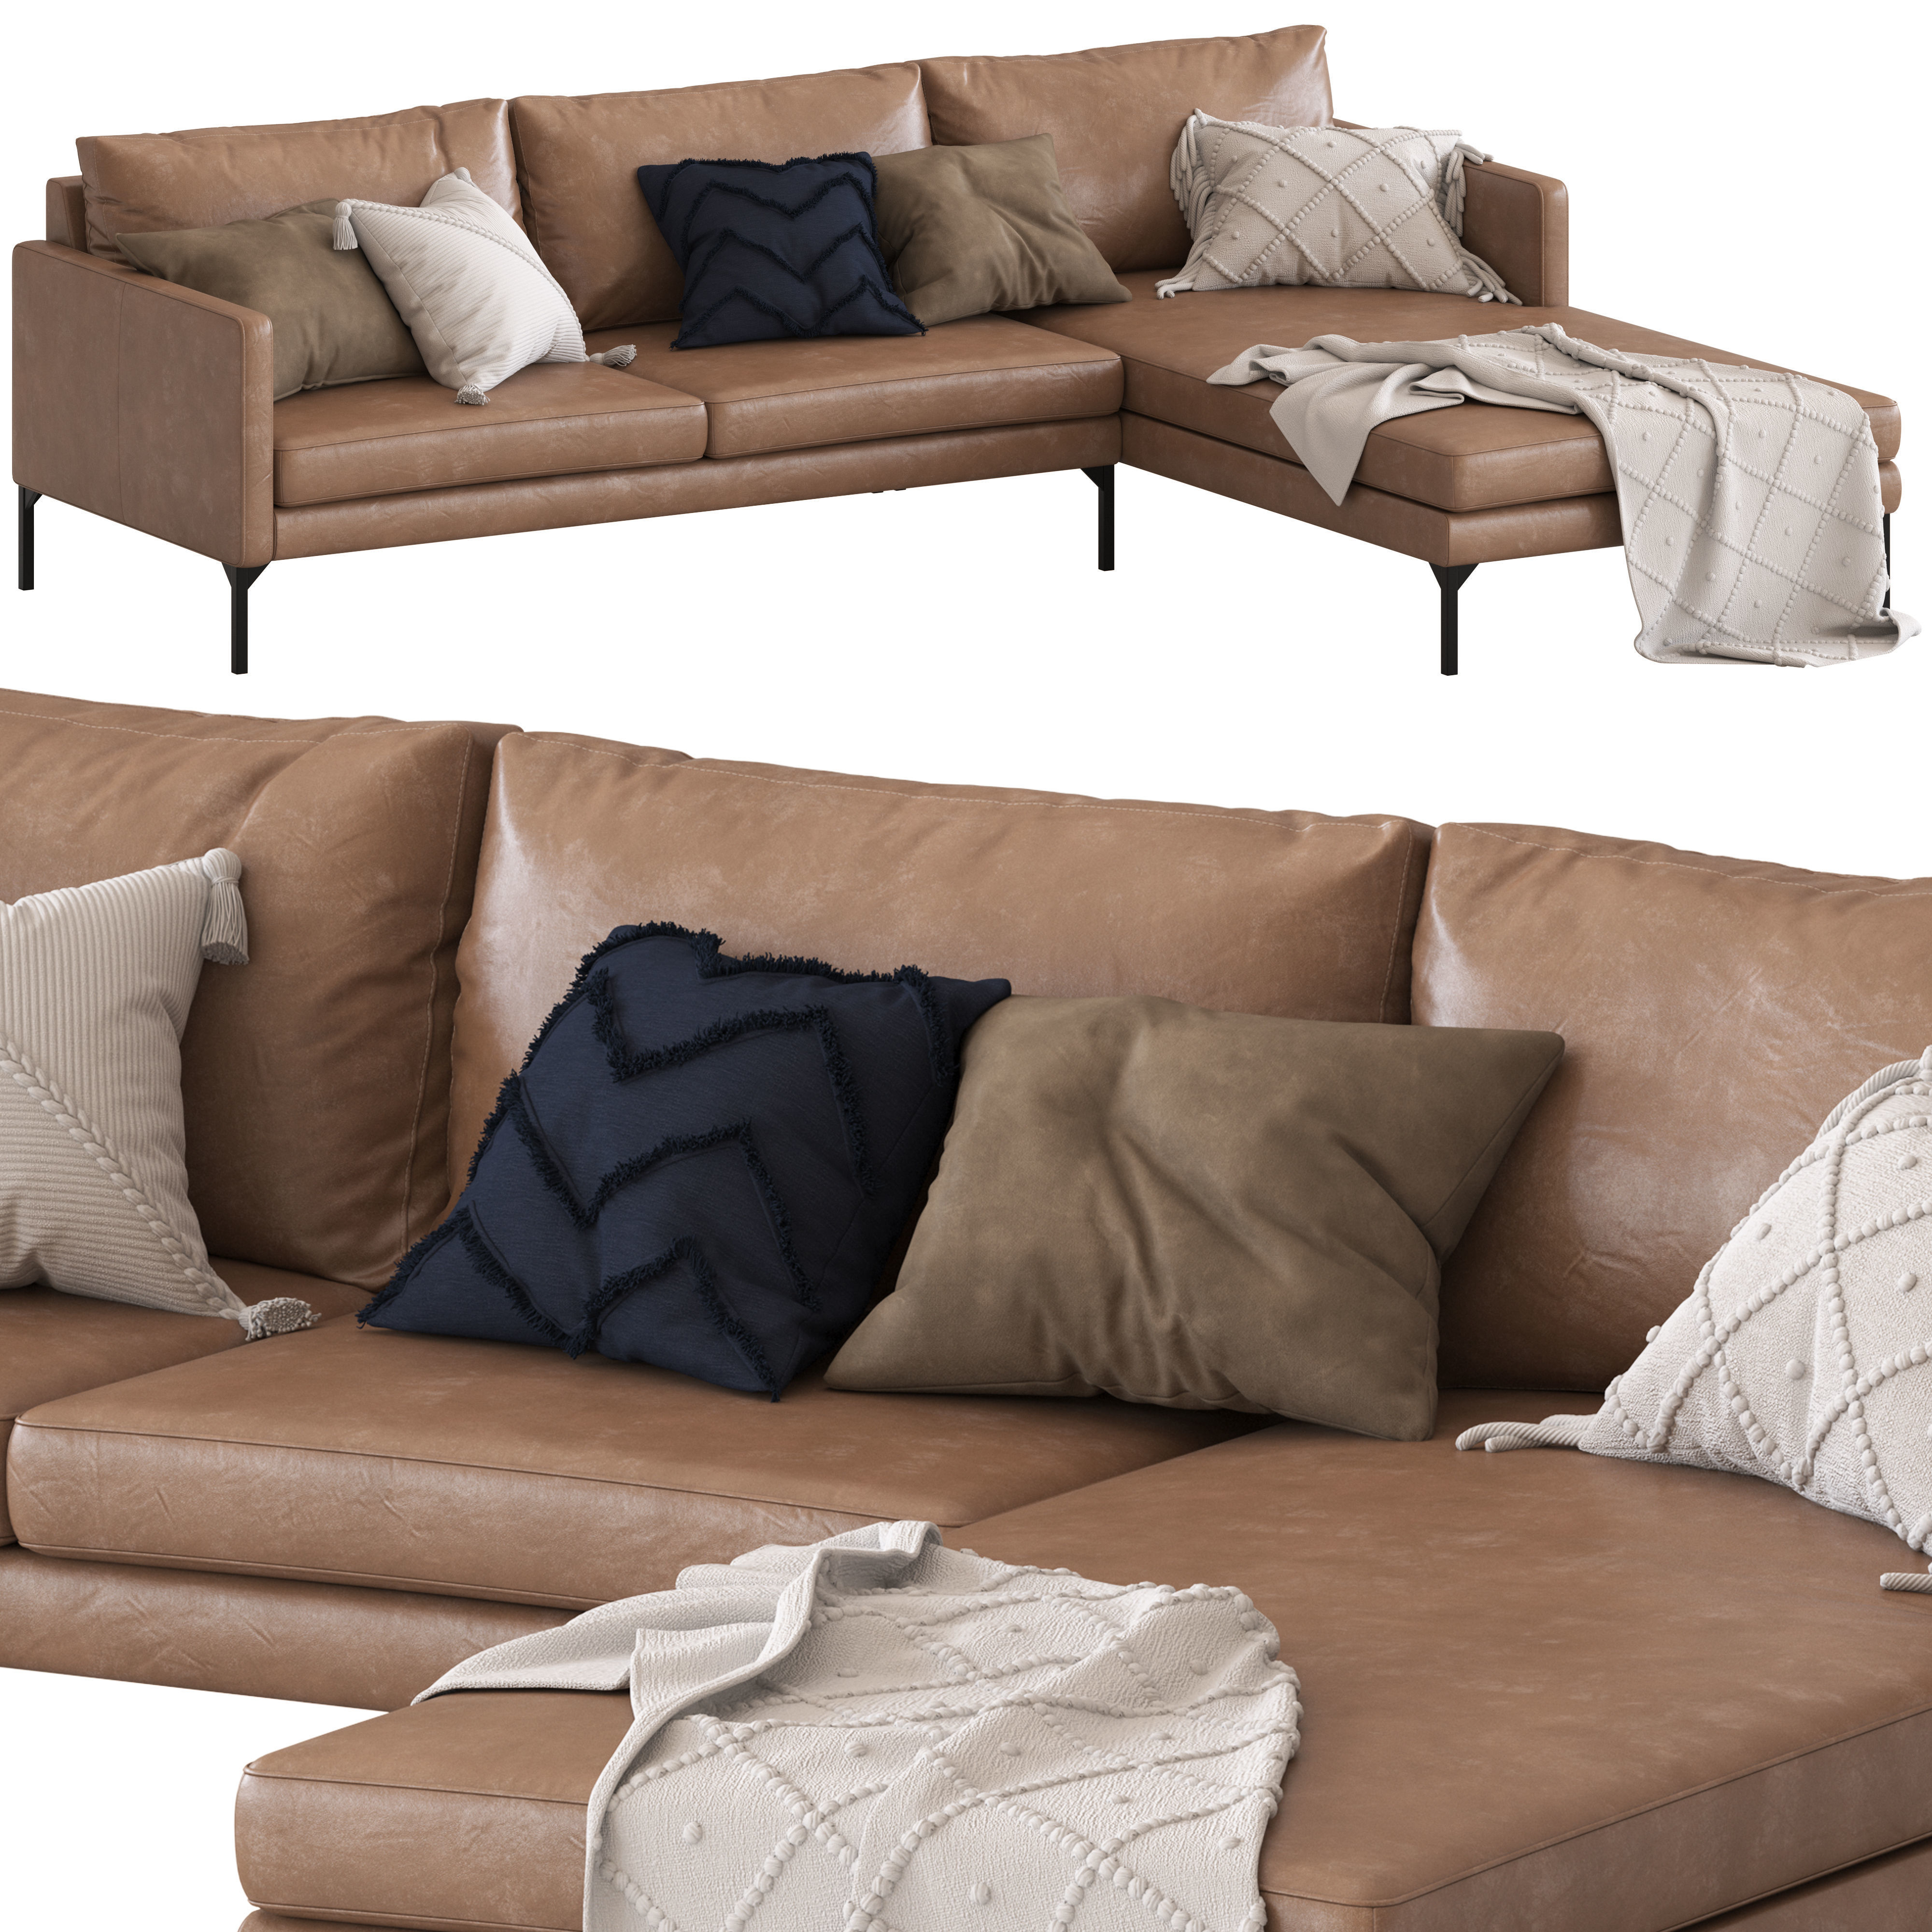 Globewest Bogart 2 seater sofa sofa with chaise